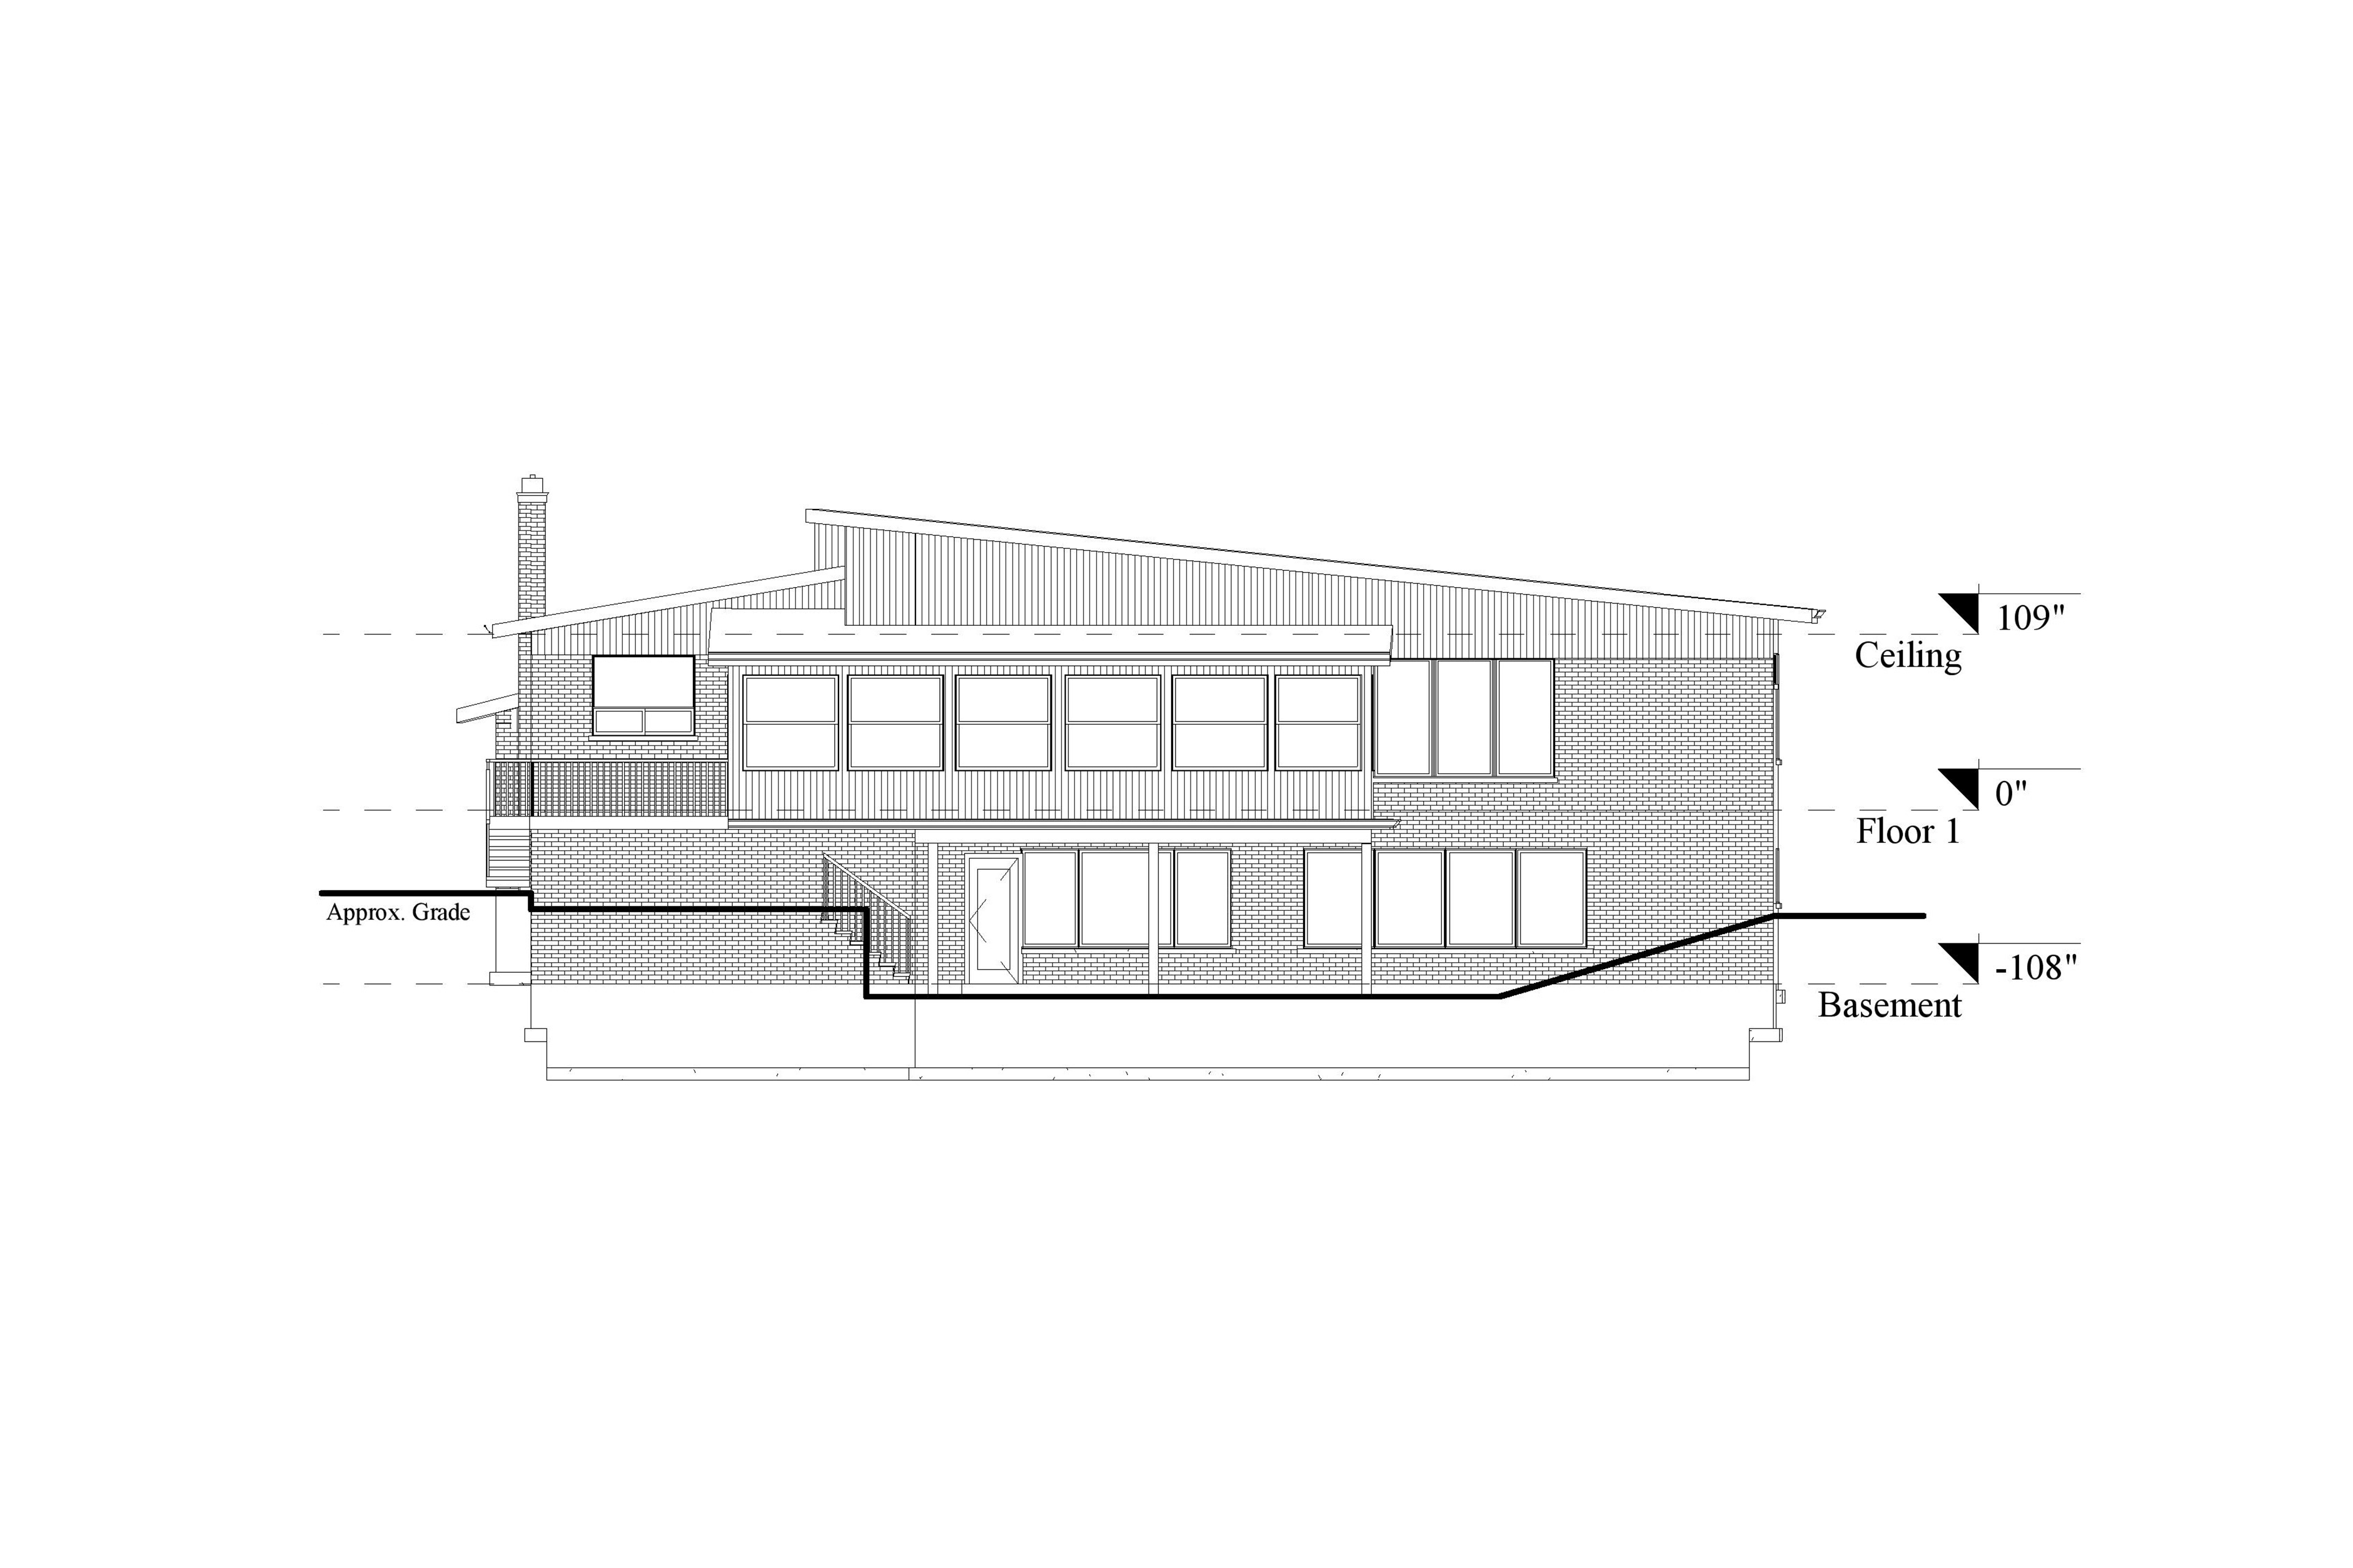 A 2D Scan to CAD elevation model of the front view of a single level residential house.